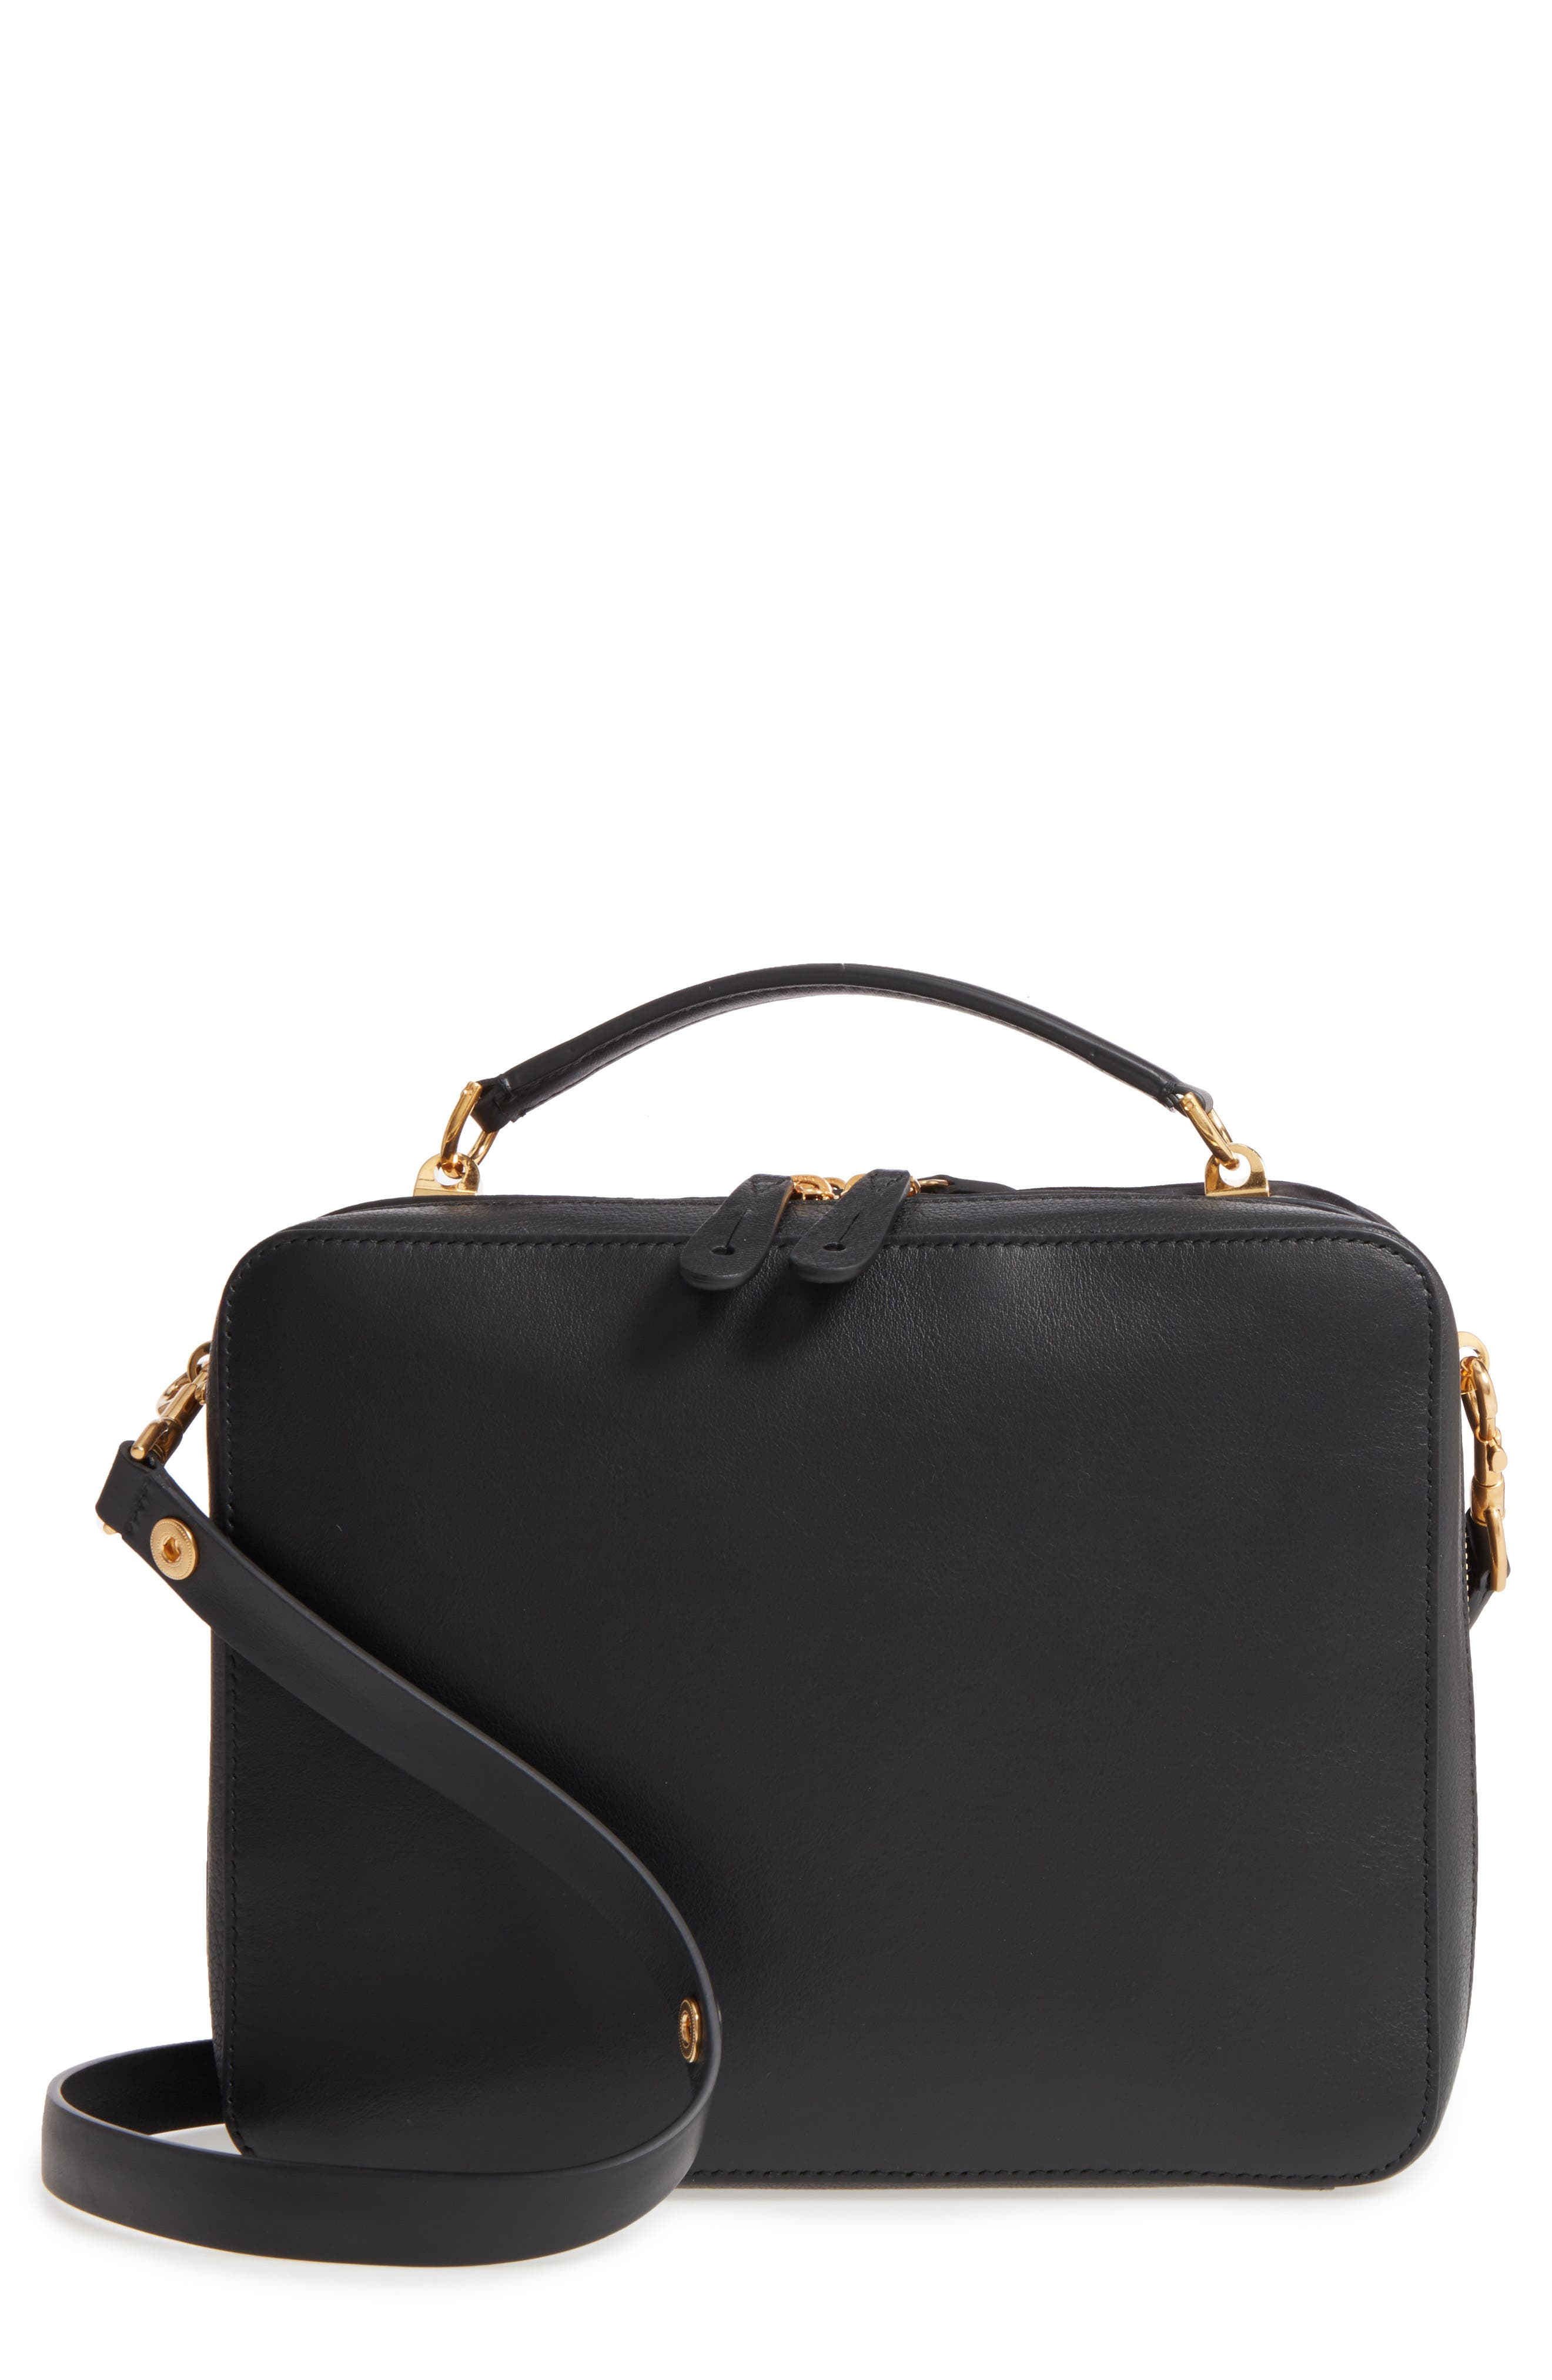 Anya Hindmarch The Stack Leather Satchel